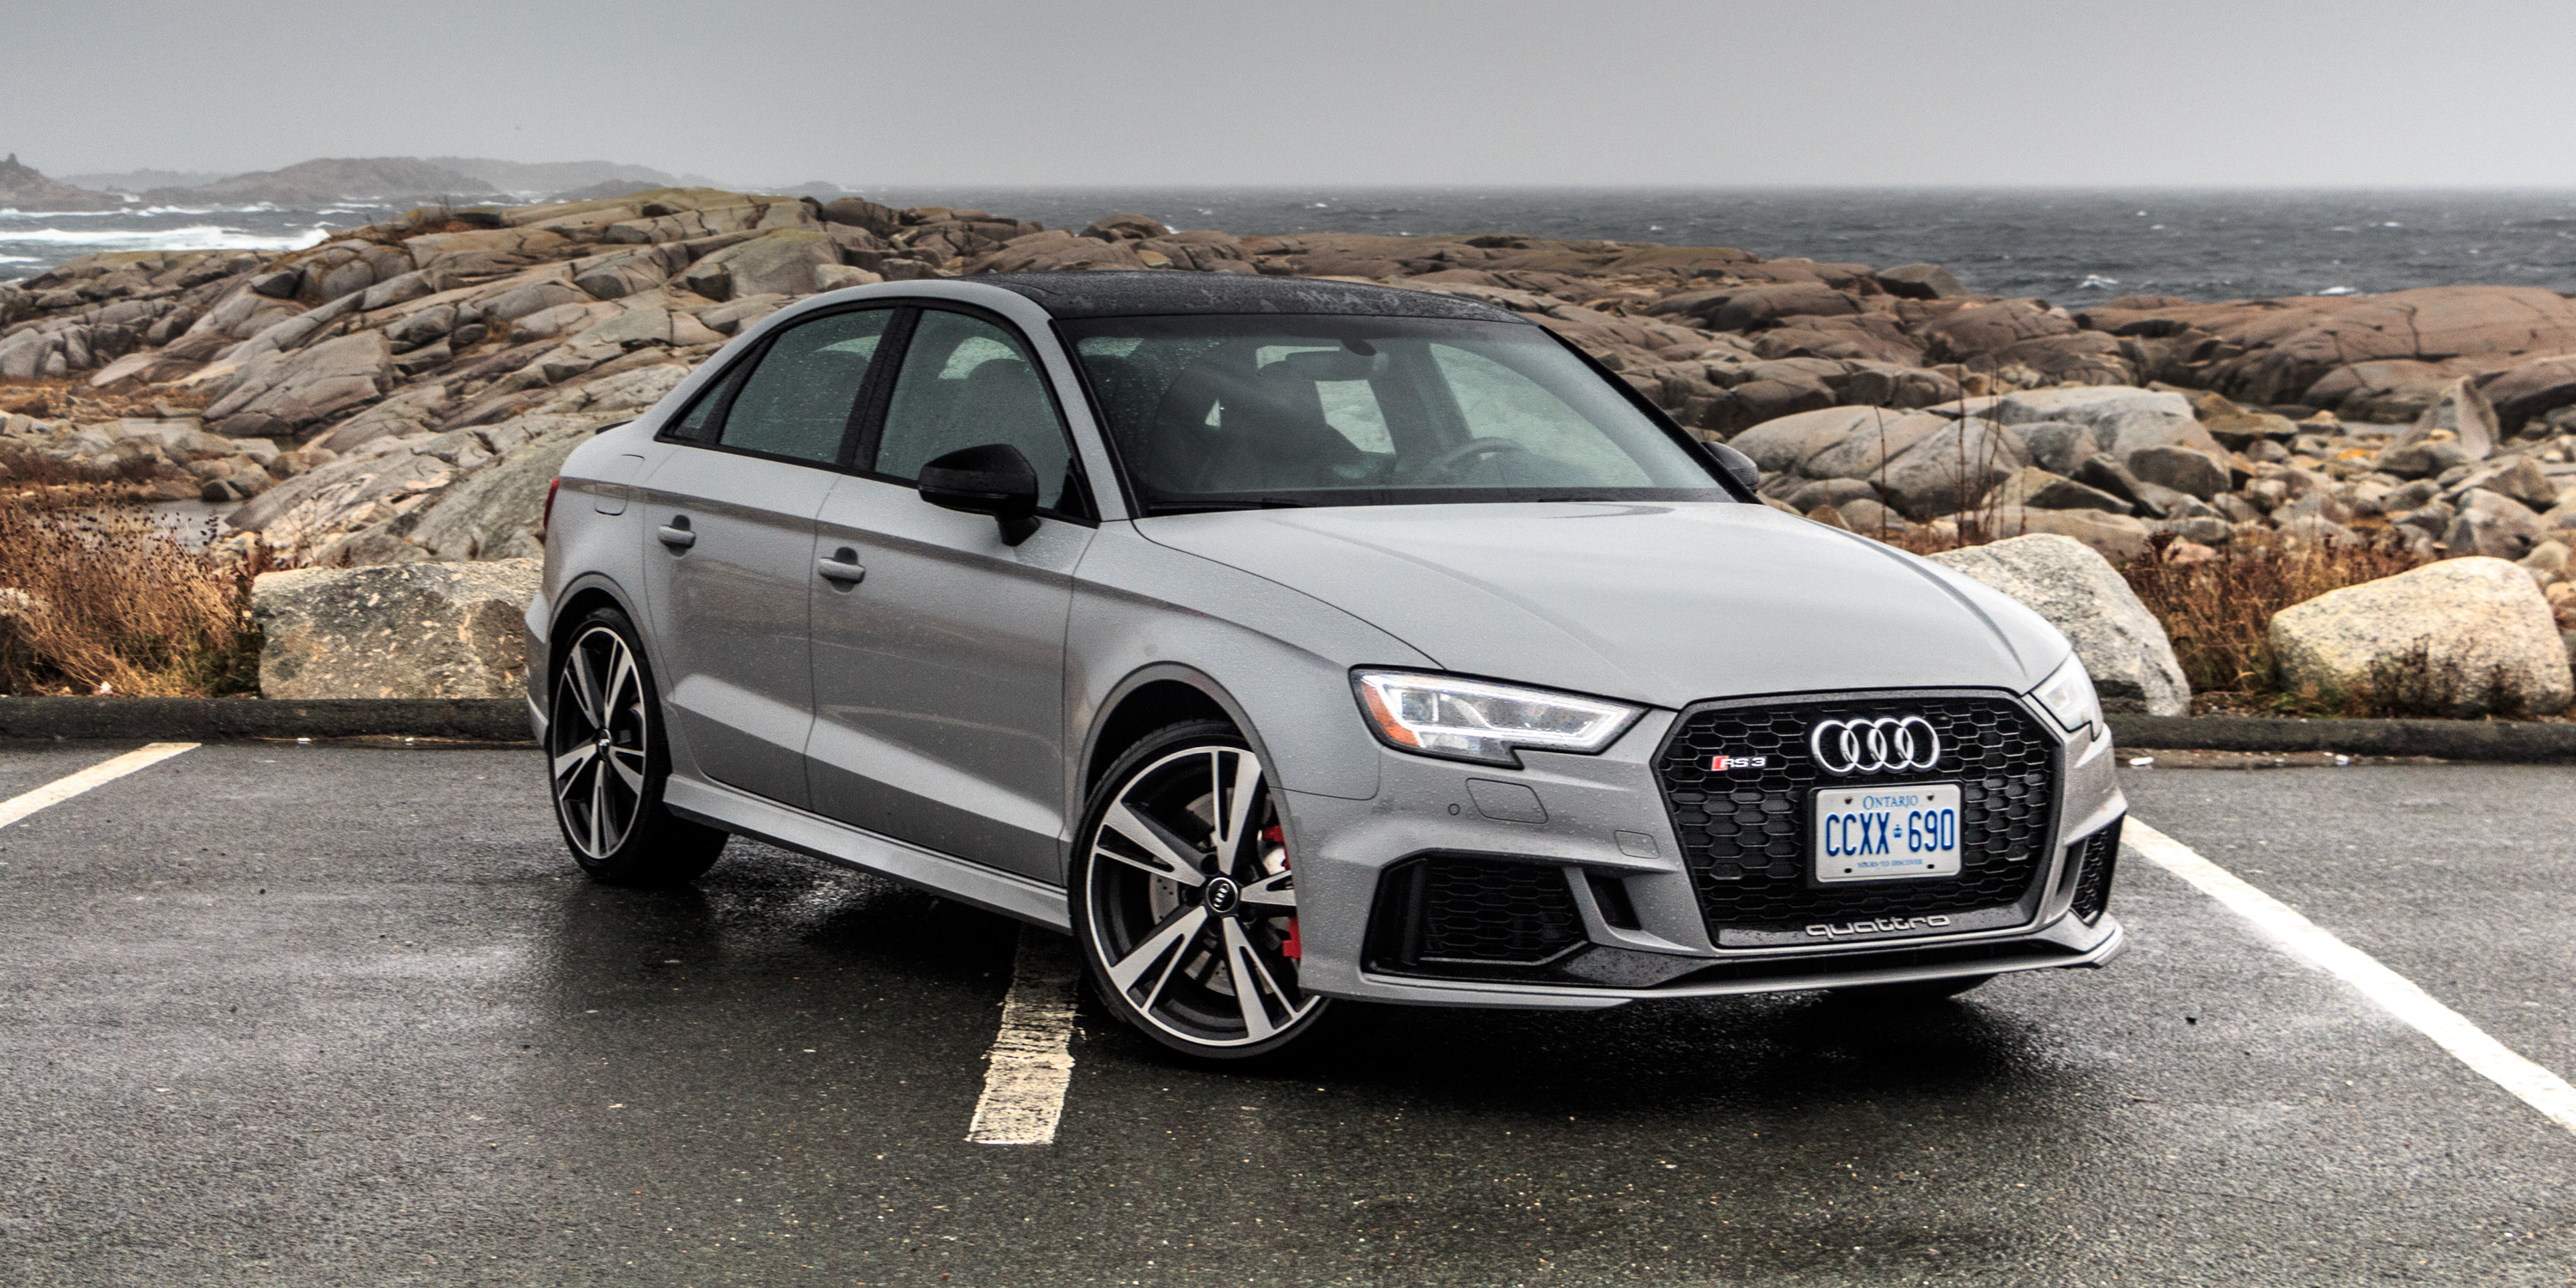 Review The Audi Rs3 Is All About Fun